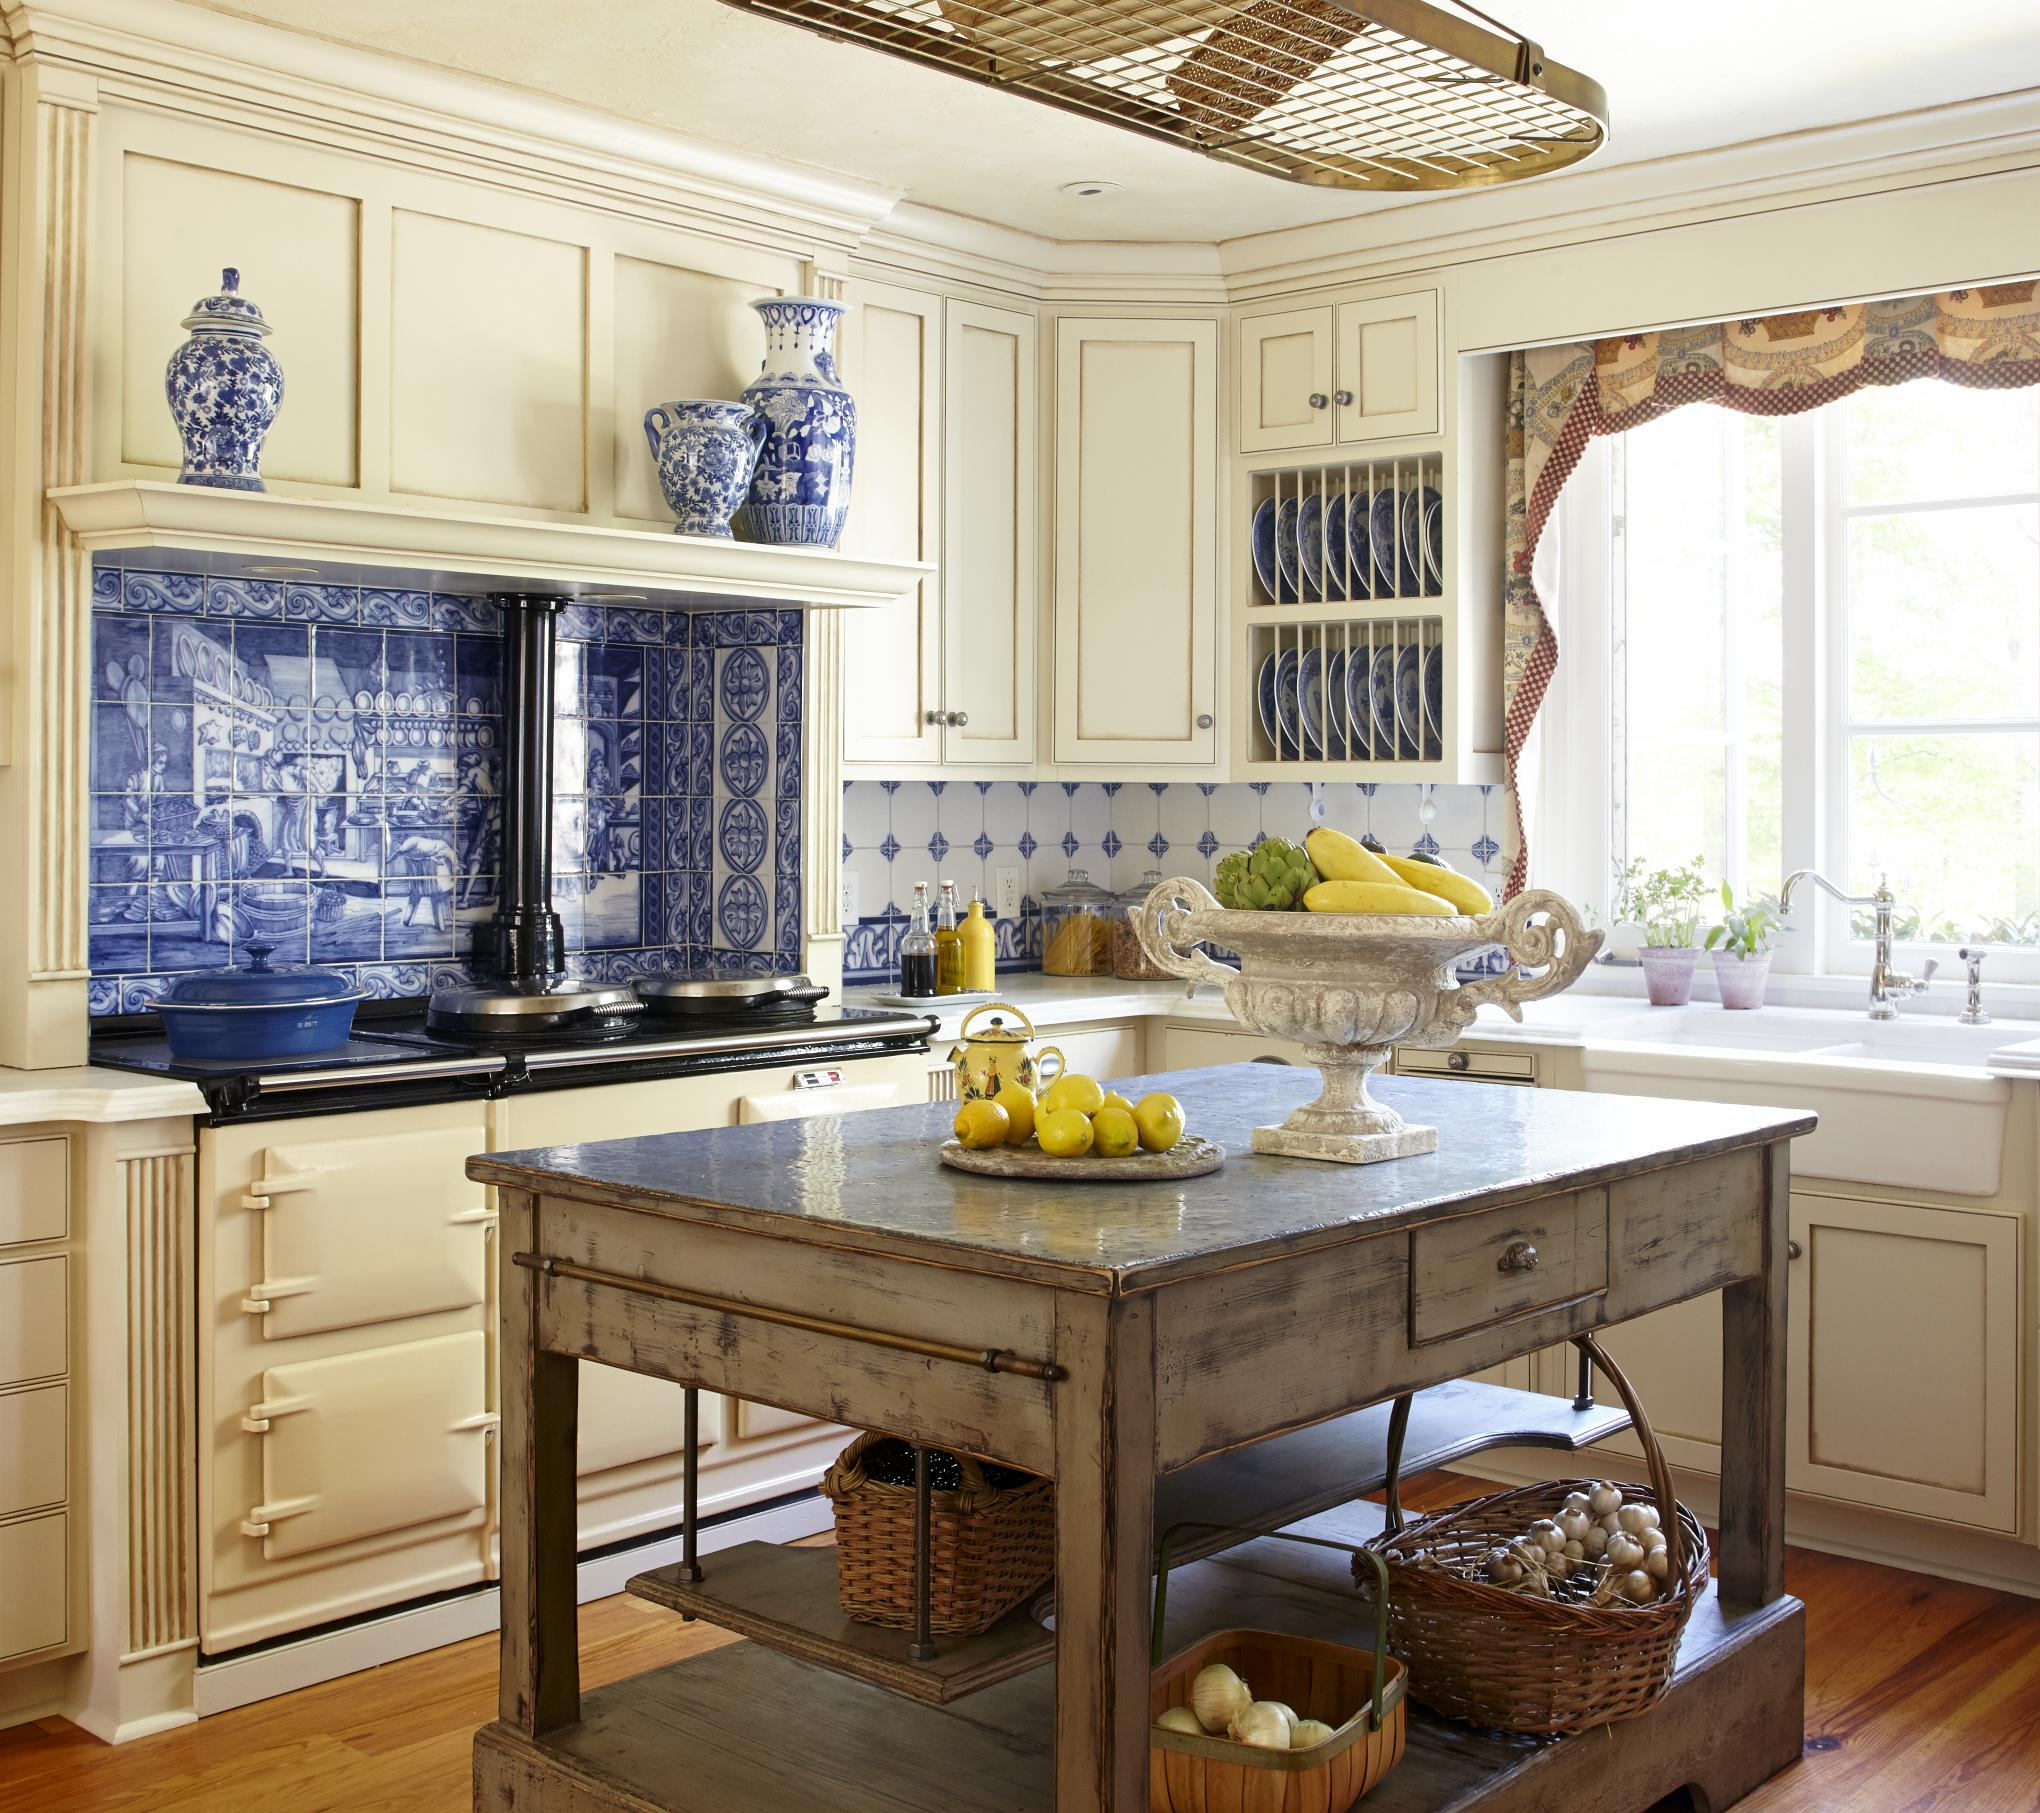 Country Cabinets For Kitchen: Country French Kitchens